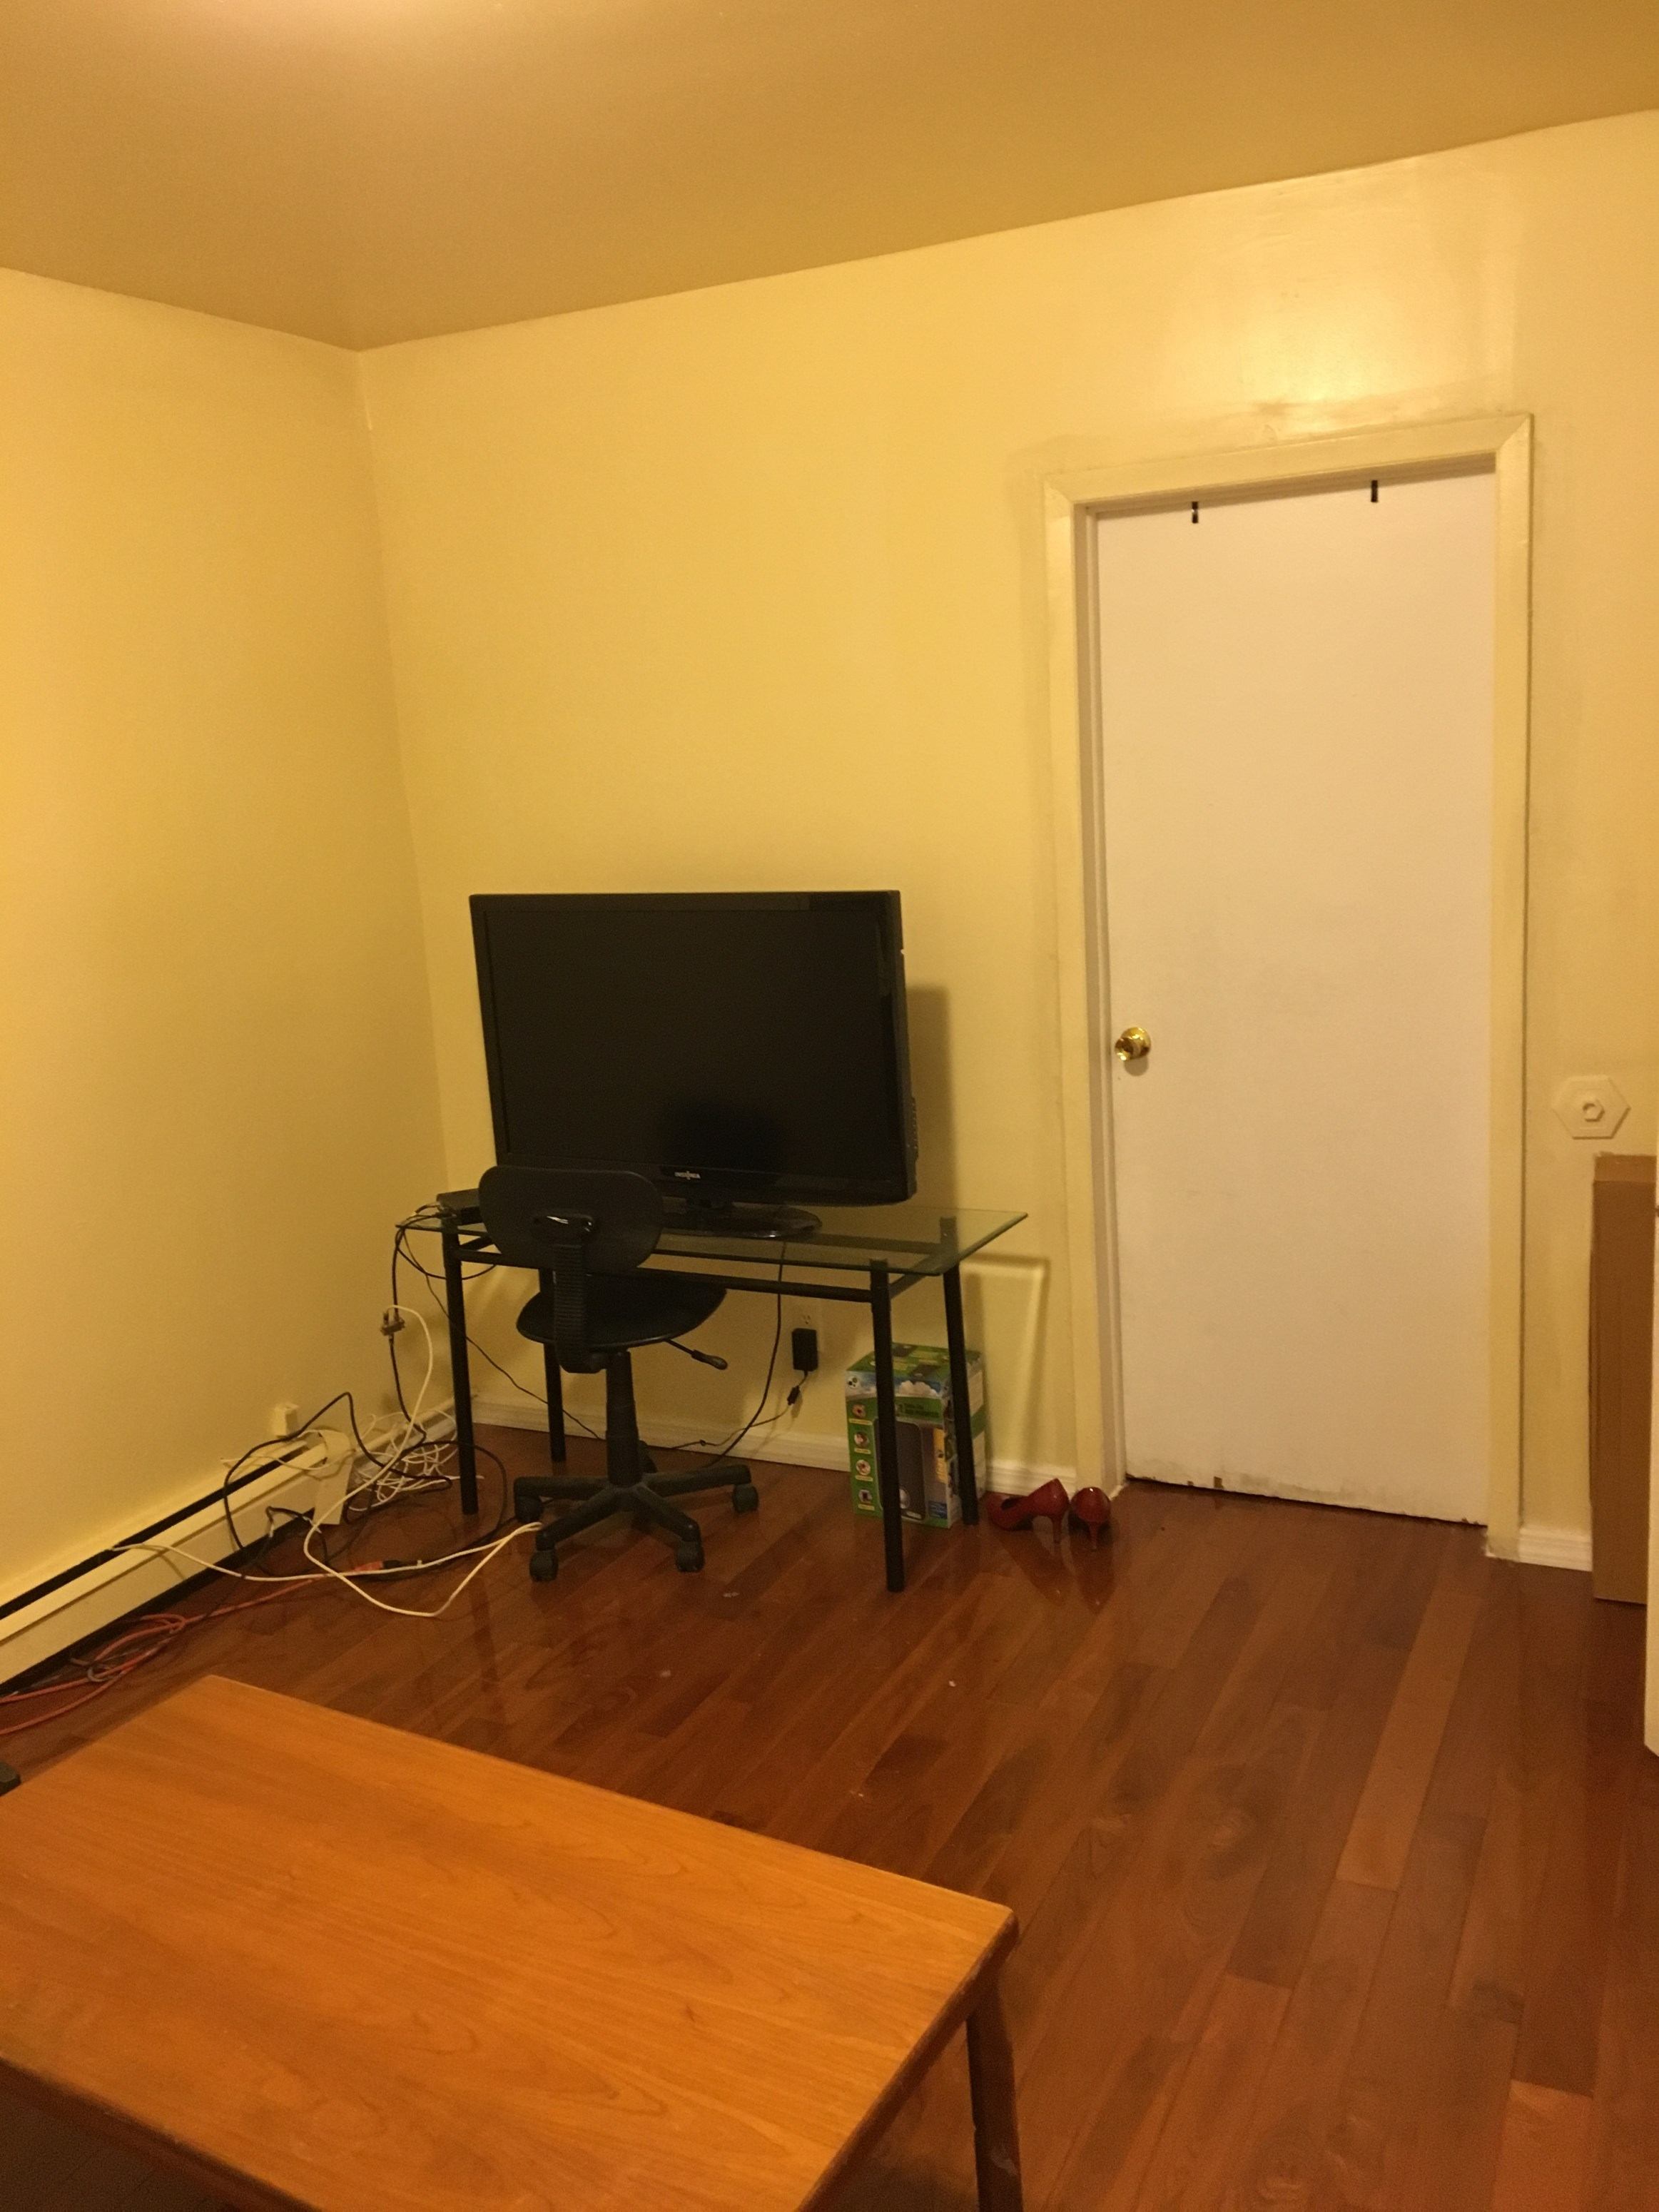 2 Bedroom Apartment For Rent Near To E Train And Q6/Q60 Bus Sutphin on q25 bus map, q84 bus map, q104 bus map, q112 bus map, q44 bus map, q30 bus map, q66 bus map, q17 bus map, m60 bus map, q83 bus map, q20 bus map, q35 bus map, q102 bus map, new york bus route map, q20a bus map, q24 bus map, q76 bus map, q65 bus map, b82 bus map, q55 bus map,